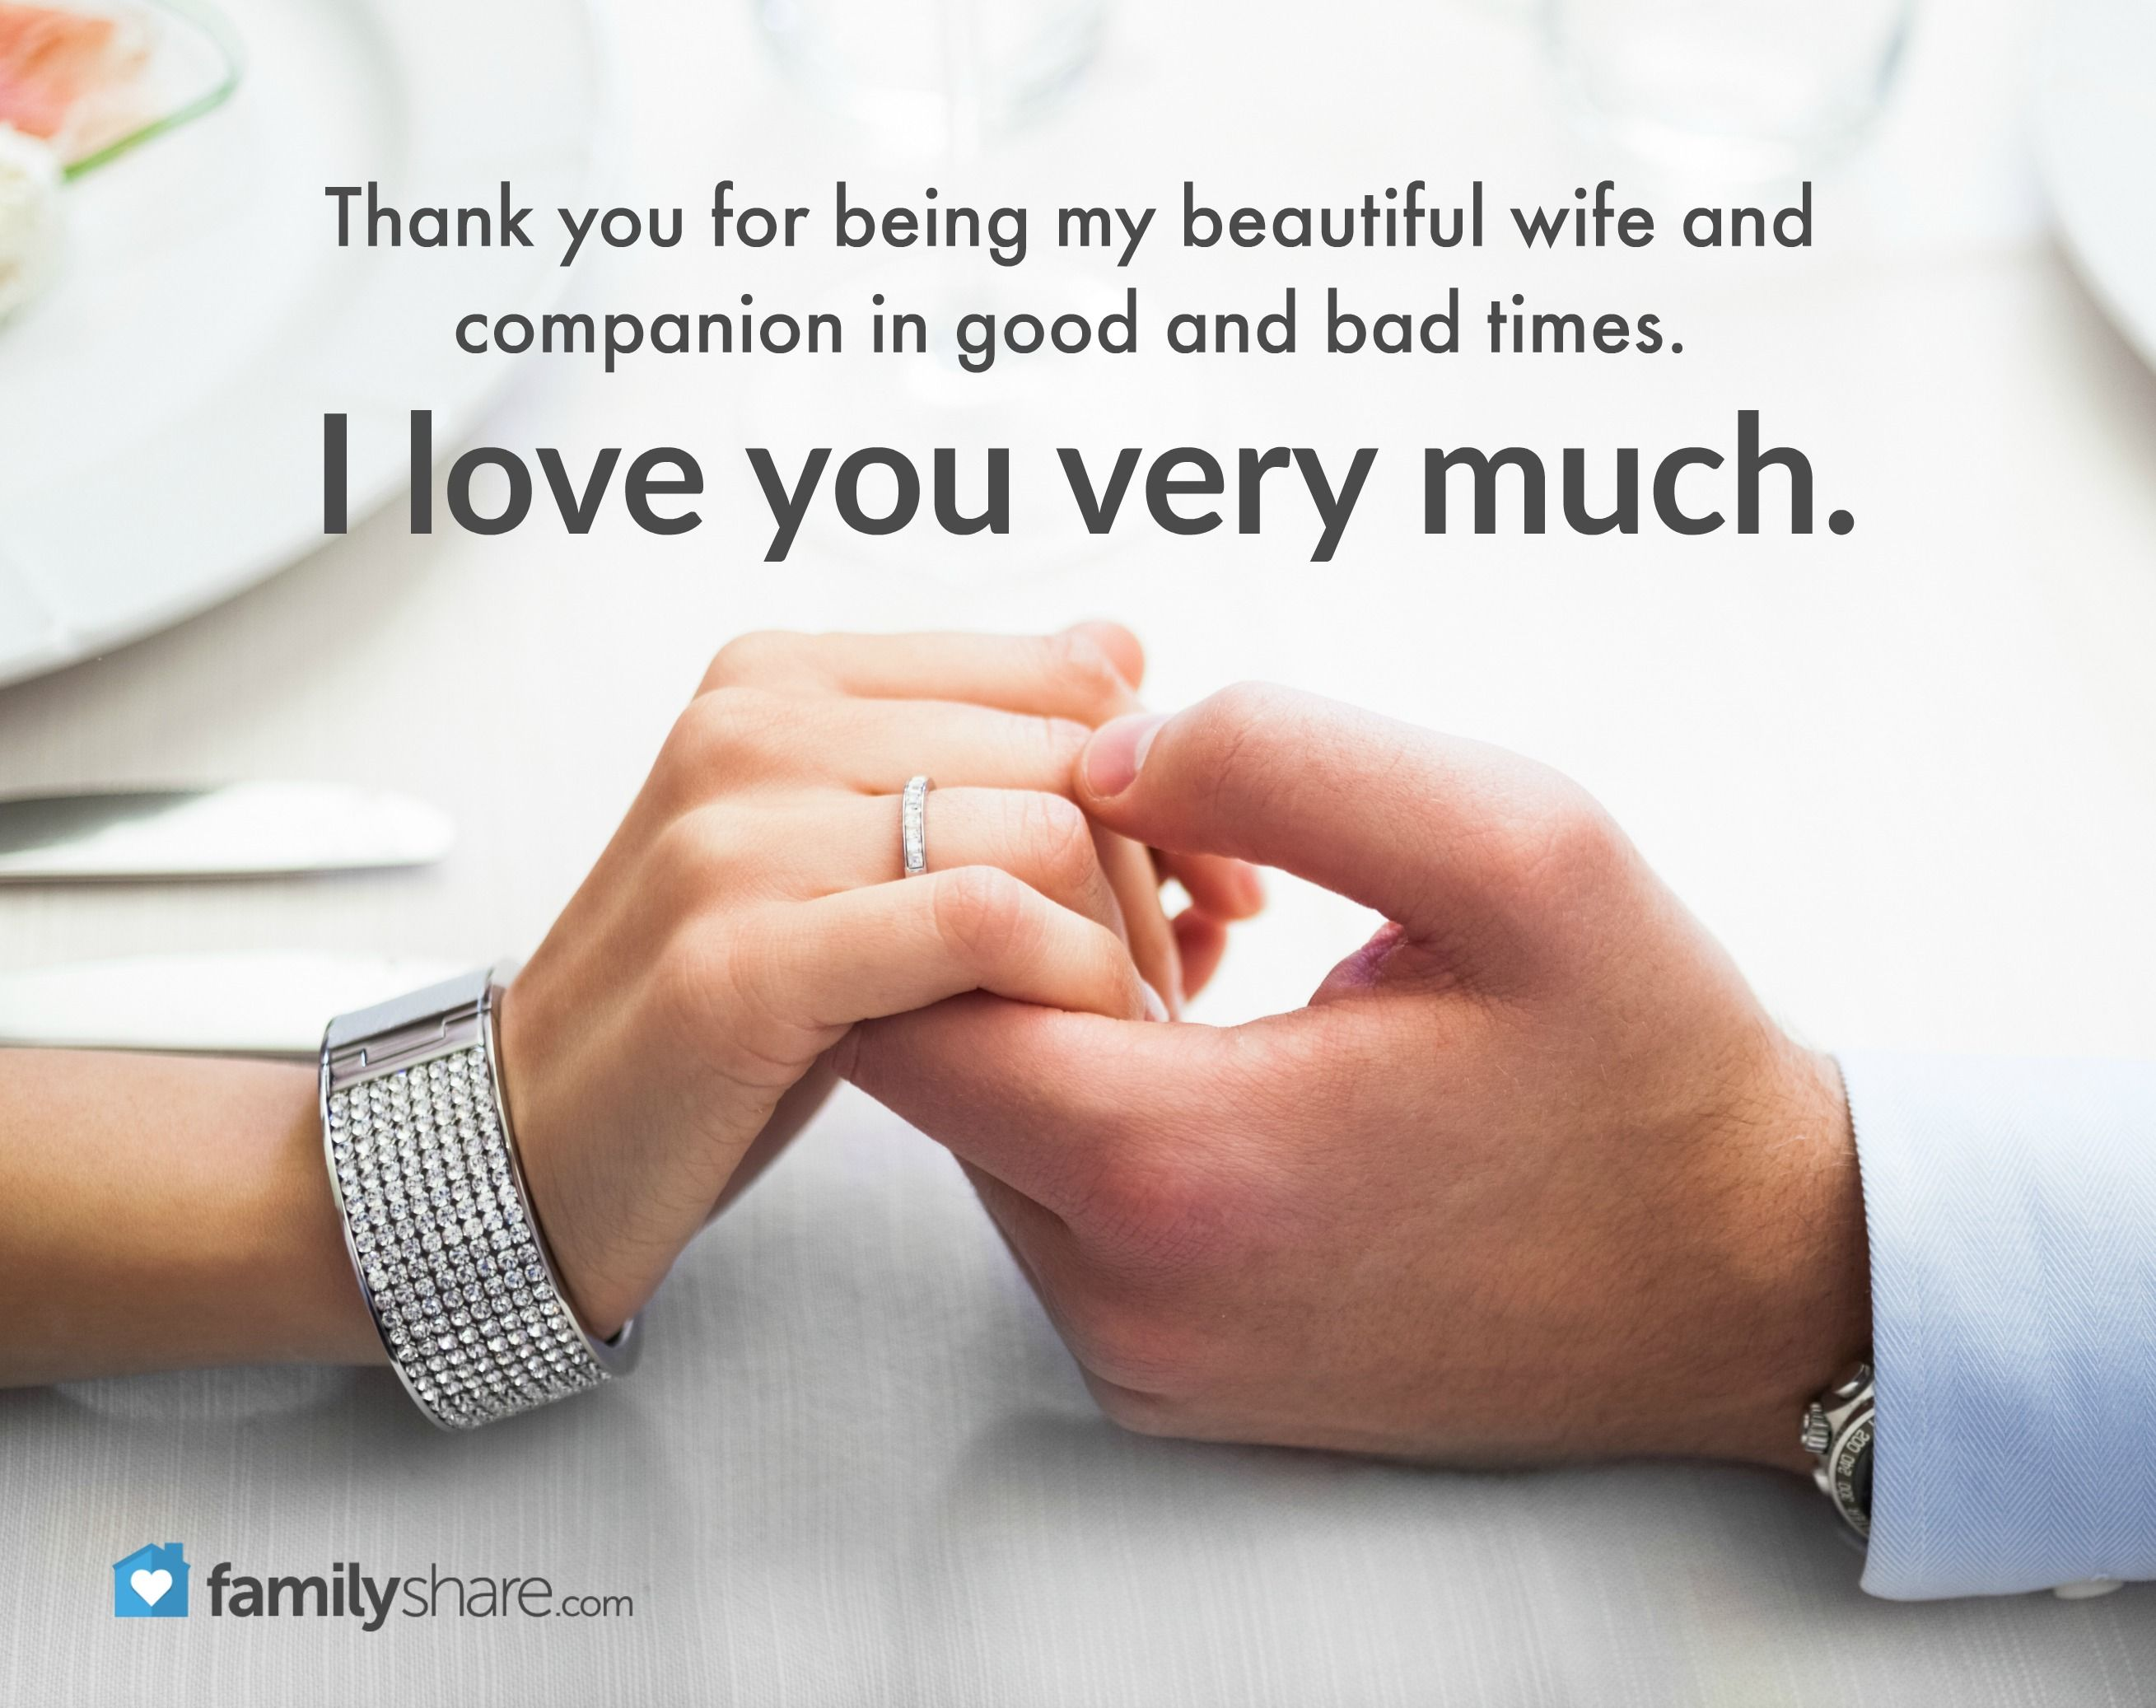 Thank You For Being My Beautiful Wife And Companion In Good And Bad Times I Love You Very Much Words Of Affirmation Beautiful Wife Happy Marriage